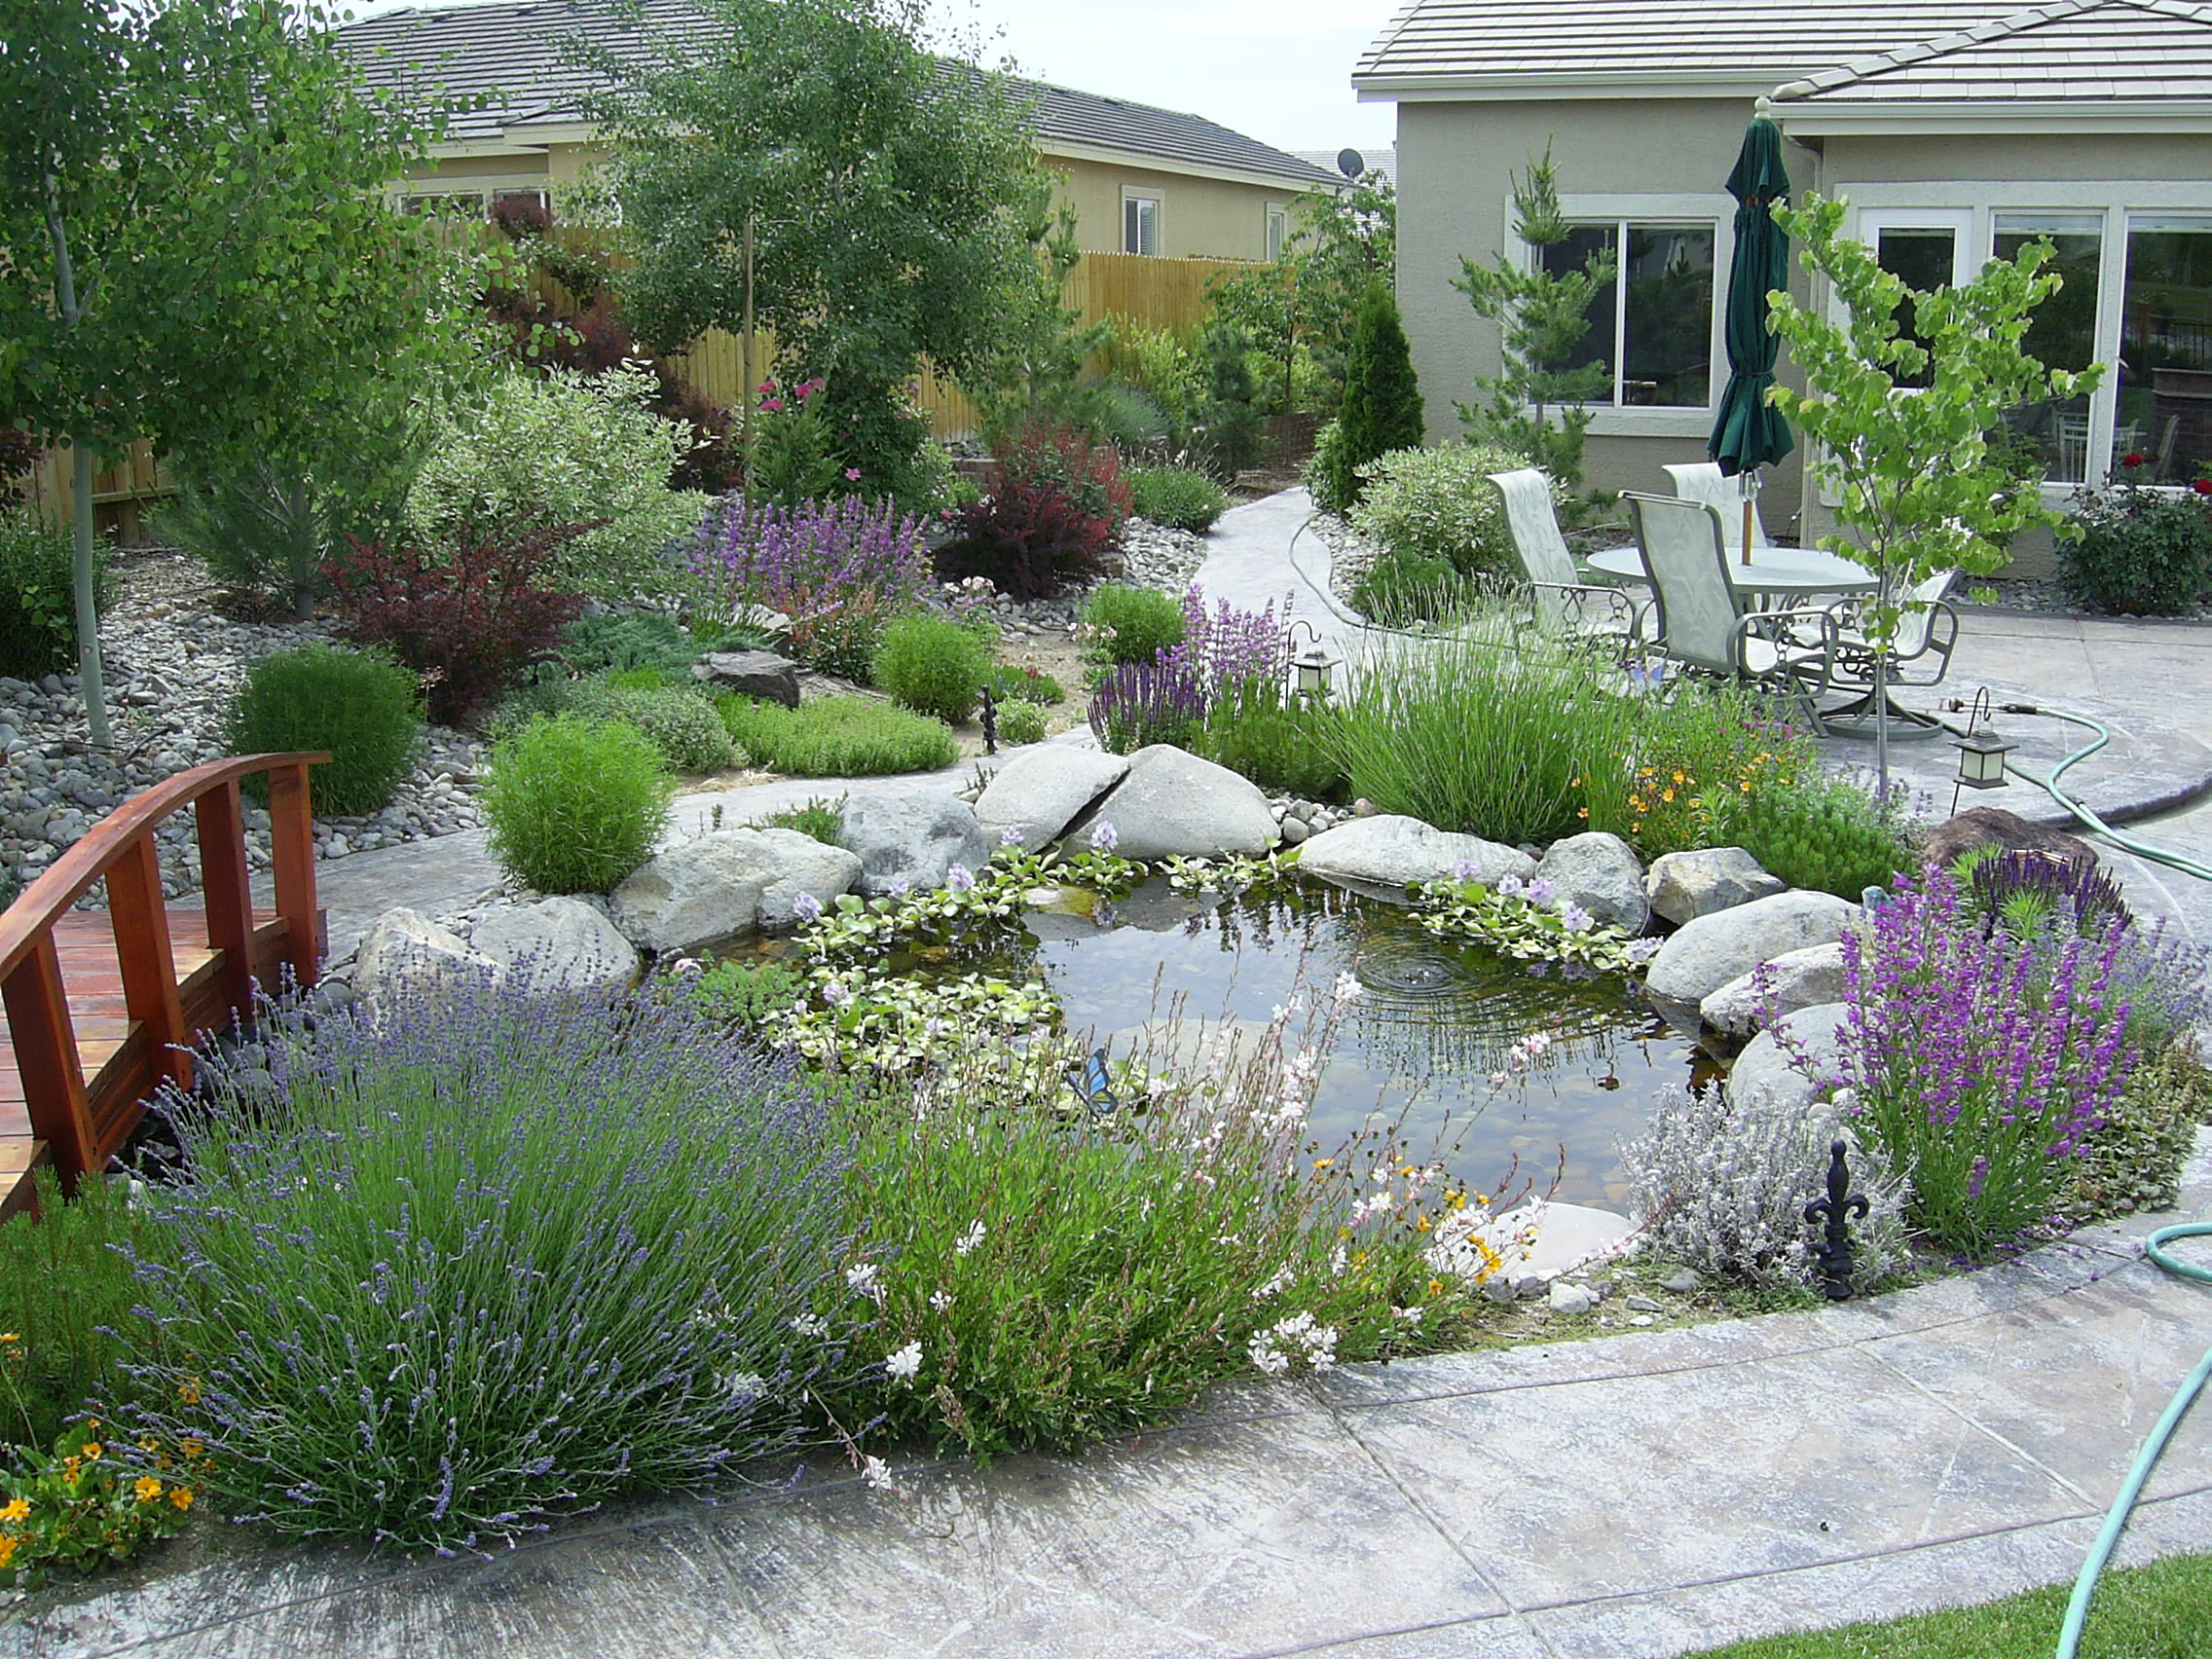 Landscape and garden design implications of water for Water garden landscaping